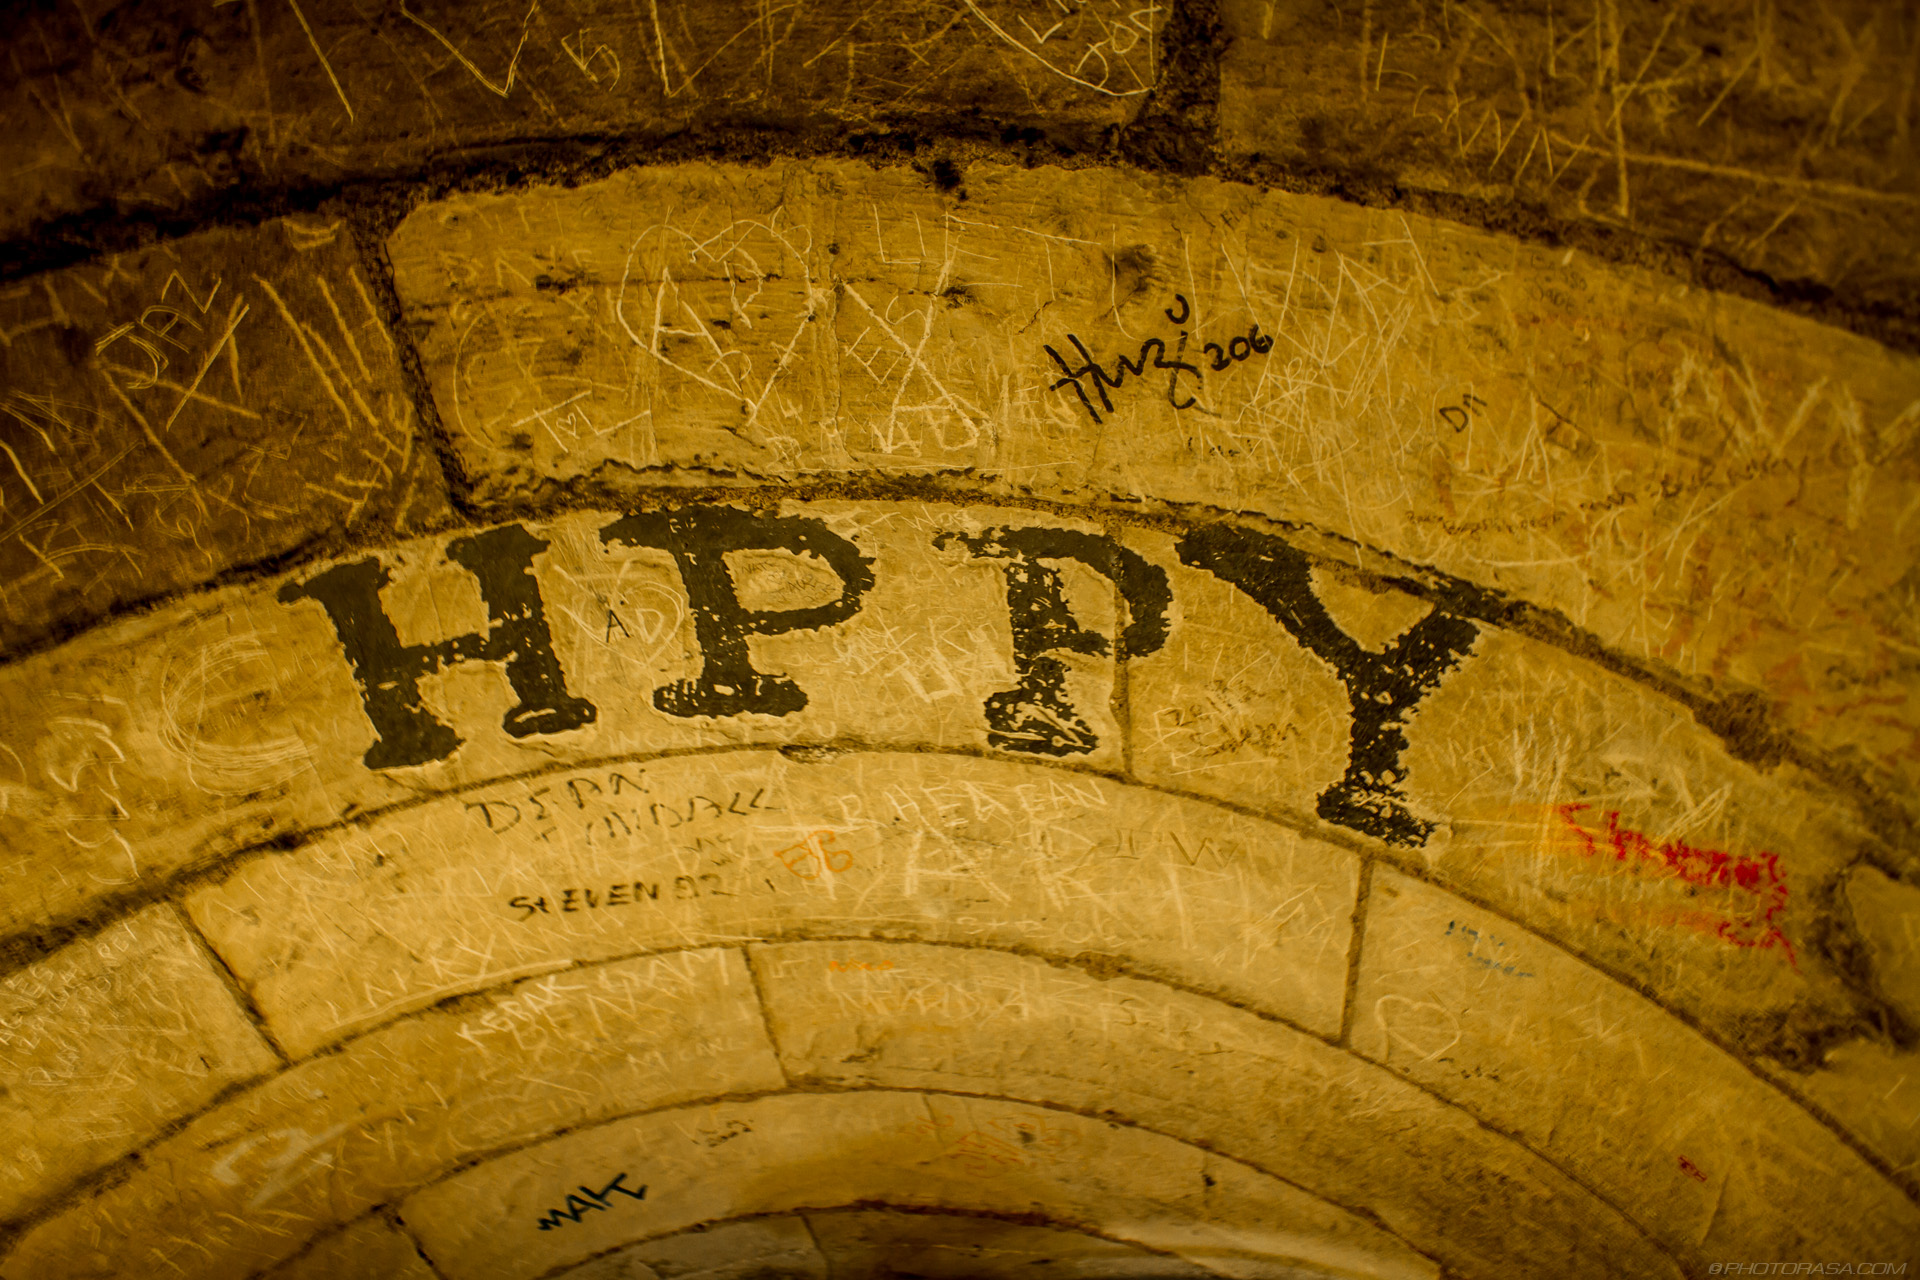 https://photorasa.com/yorkminster-cathedral/hppy-big-letter-graffiti/